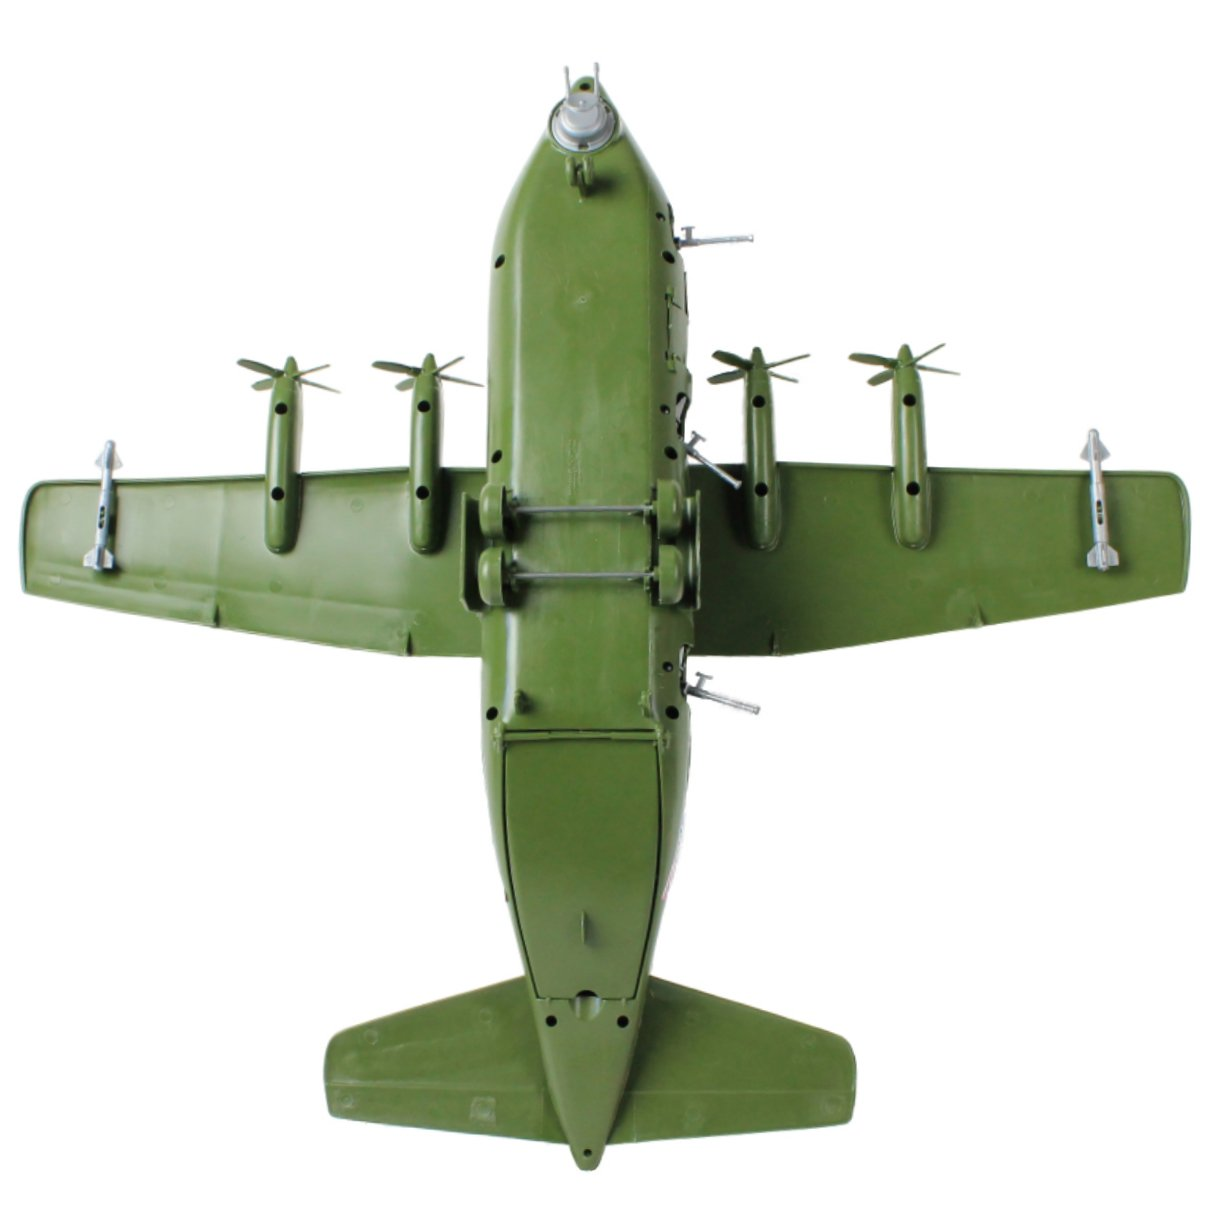 TimMee Plastic Army Men C130 Playset -27pc Giant Military Airplane Made in USA by Tim Mee Toy (Image #7)